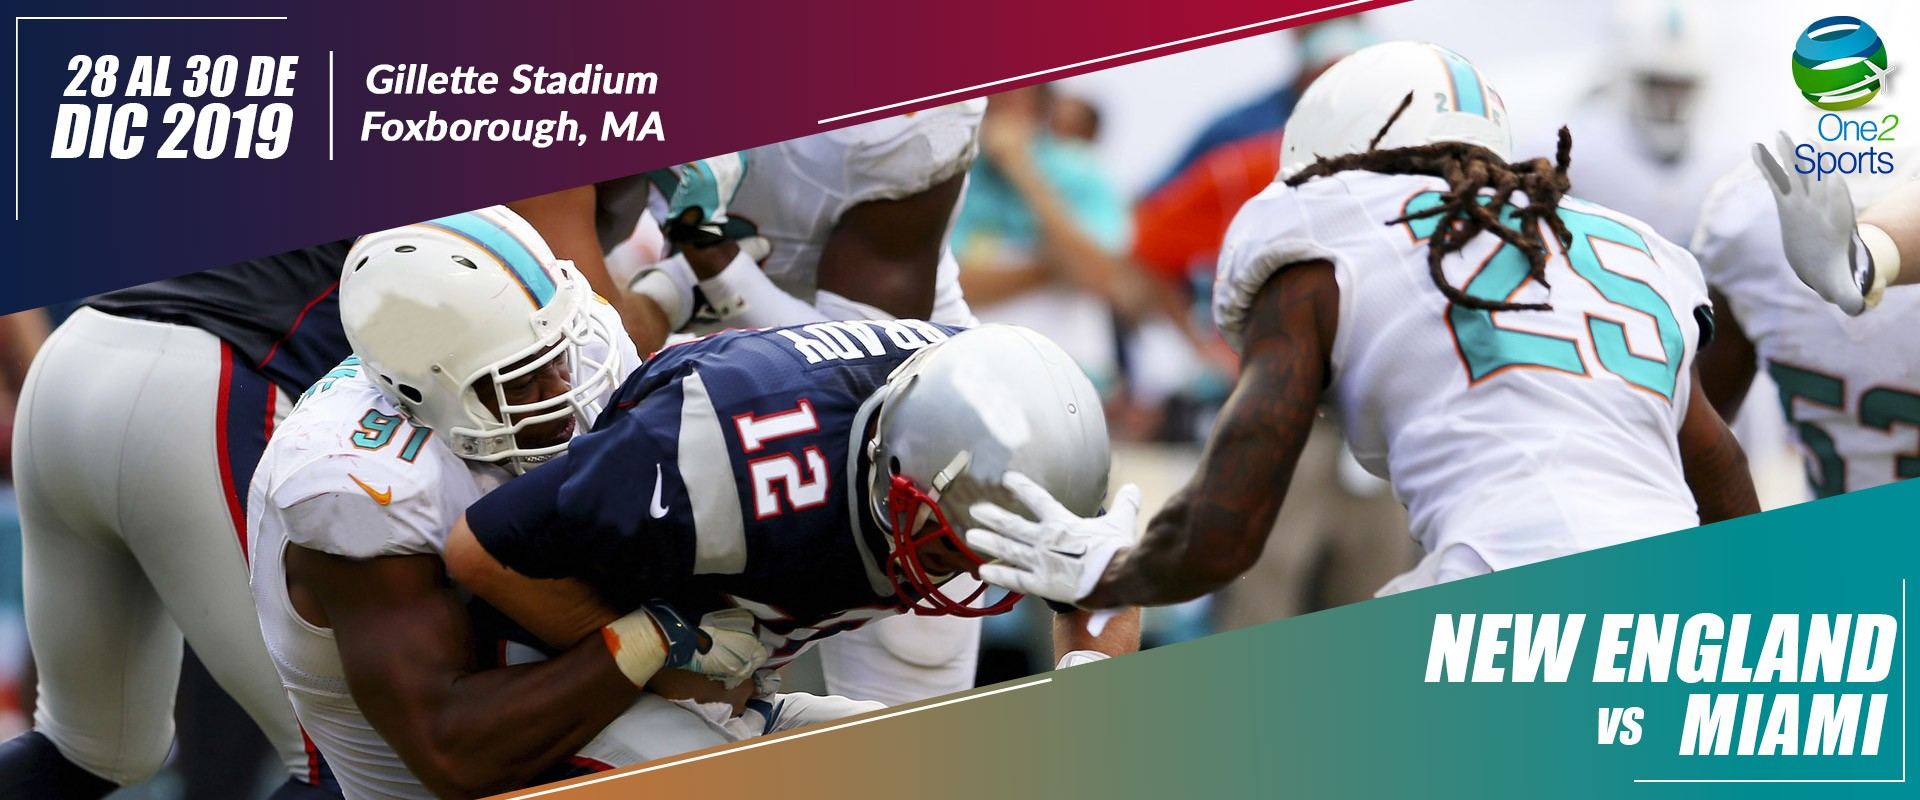 New England vs Miami